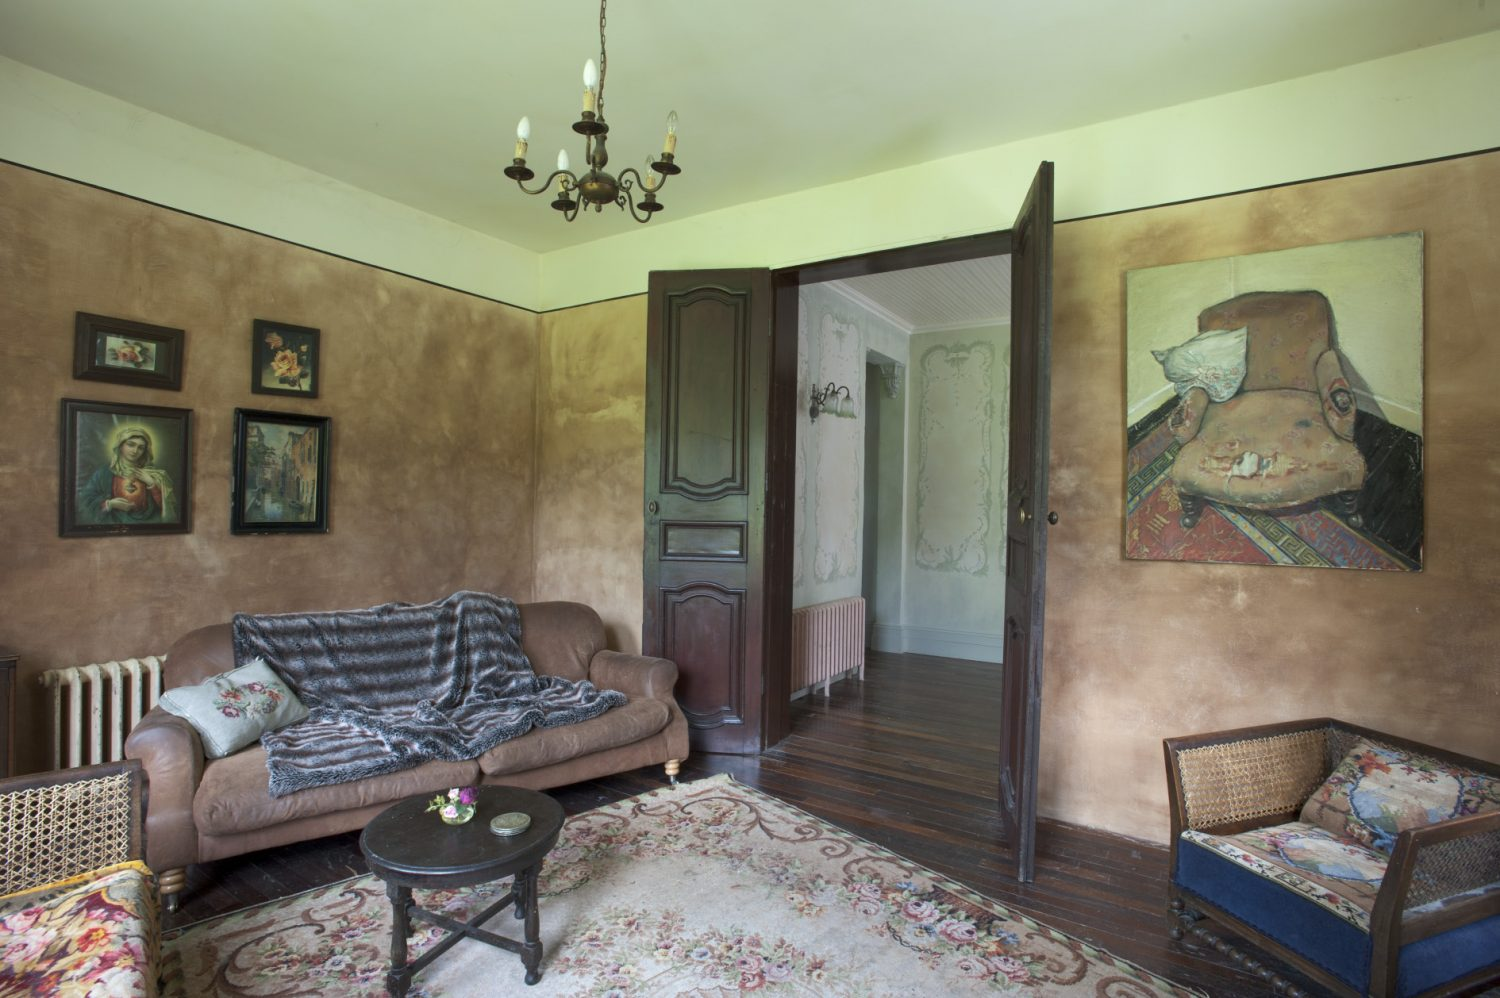 Leading off the rear hallway, the sitting room strikes a change of tone with its plaster pink walls and tobacco brown leather and cane sofas